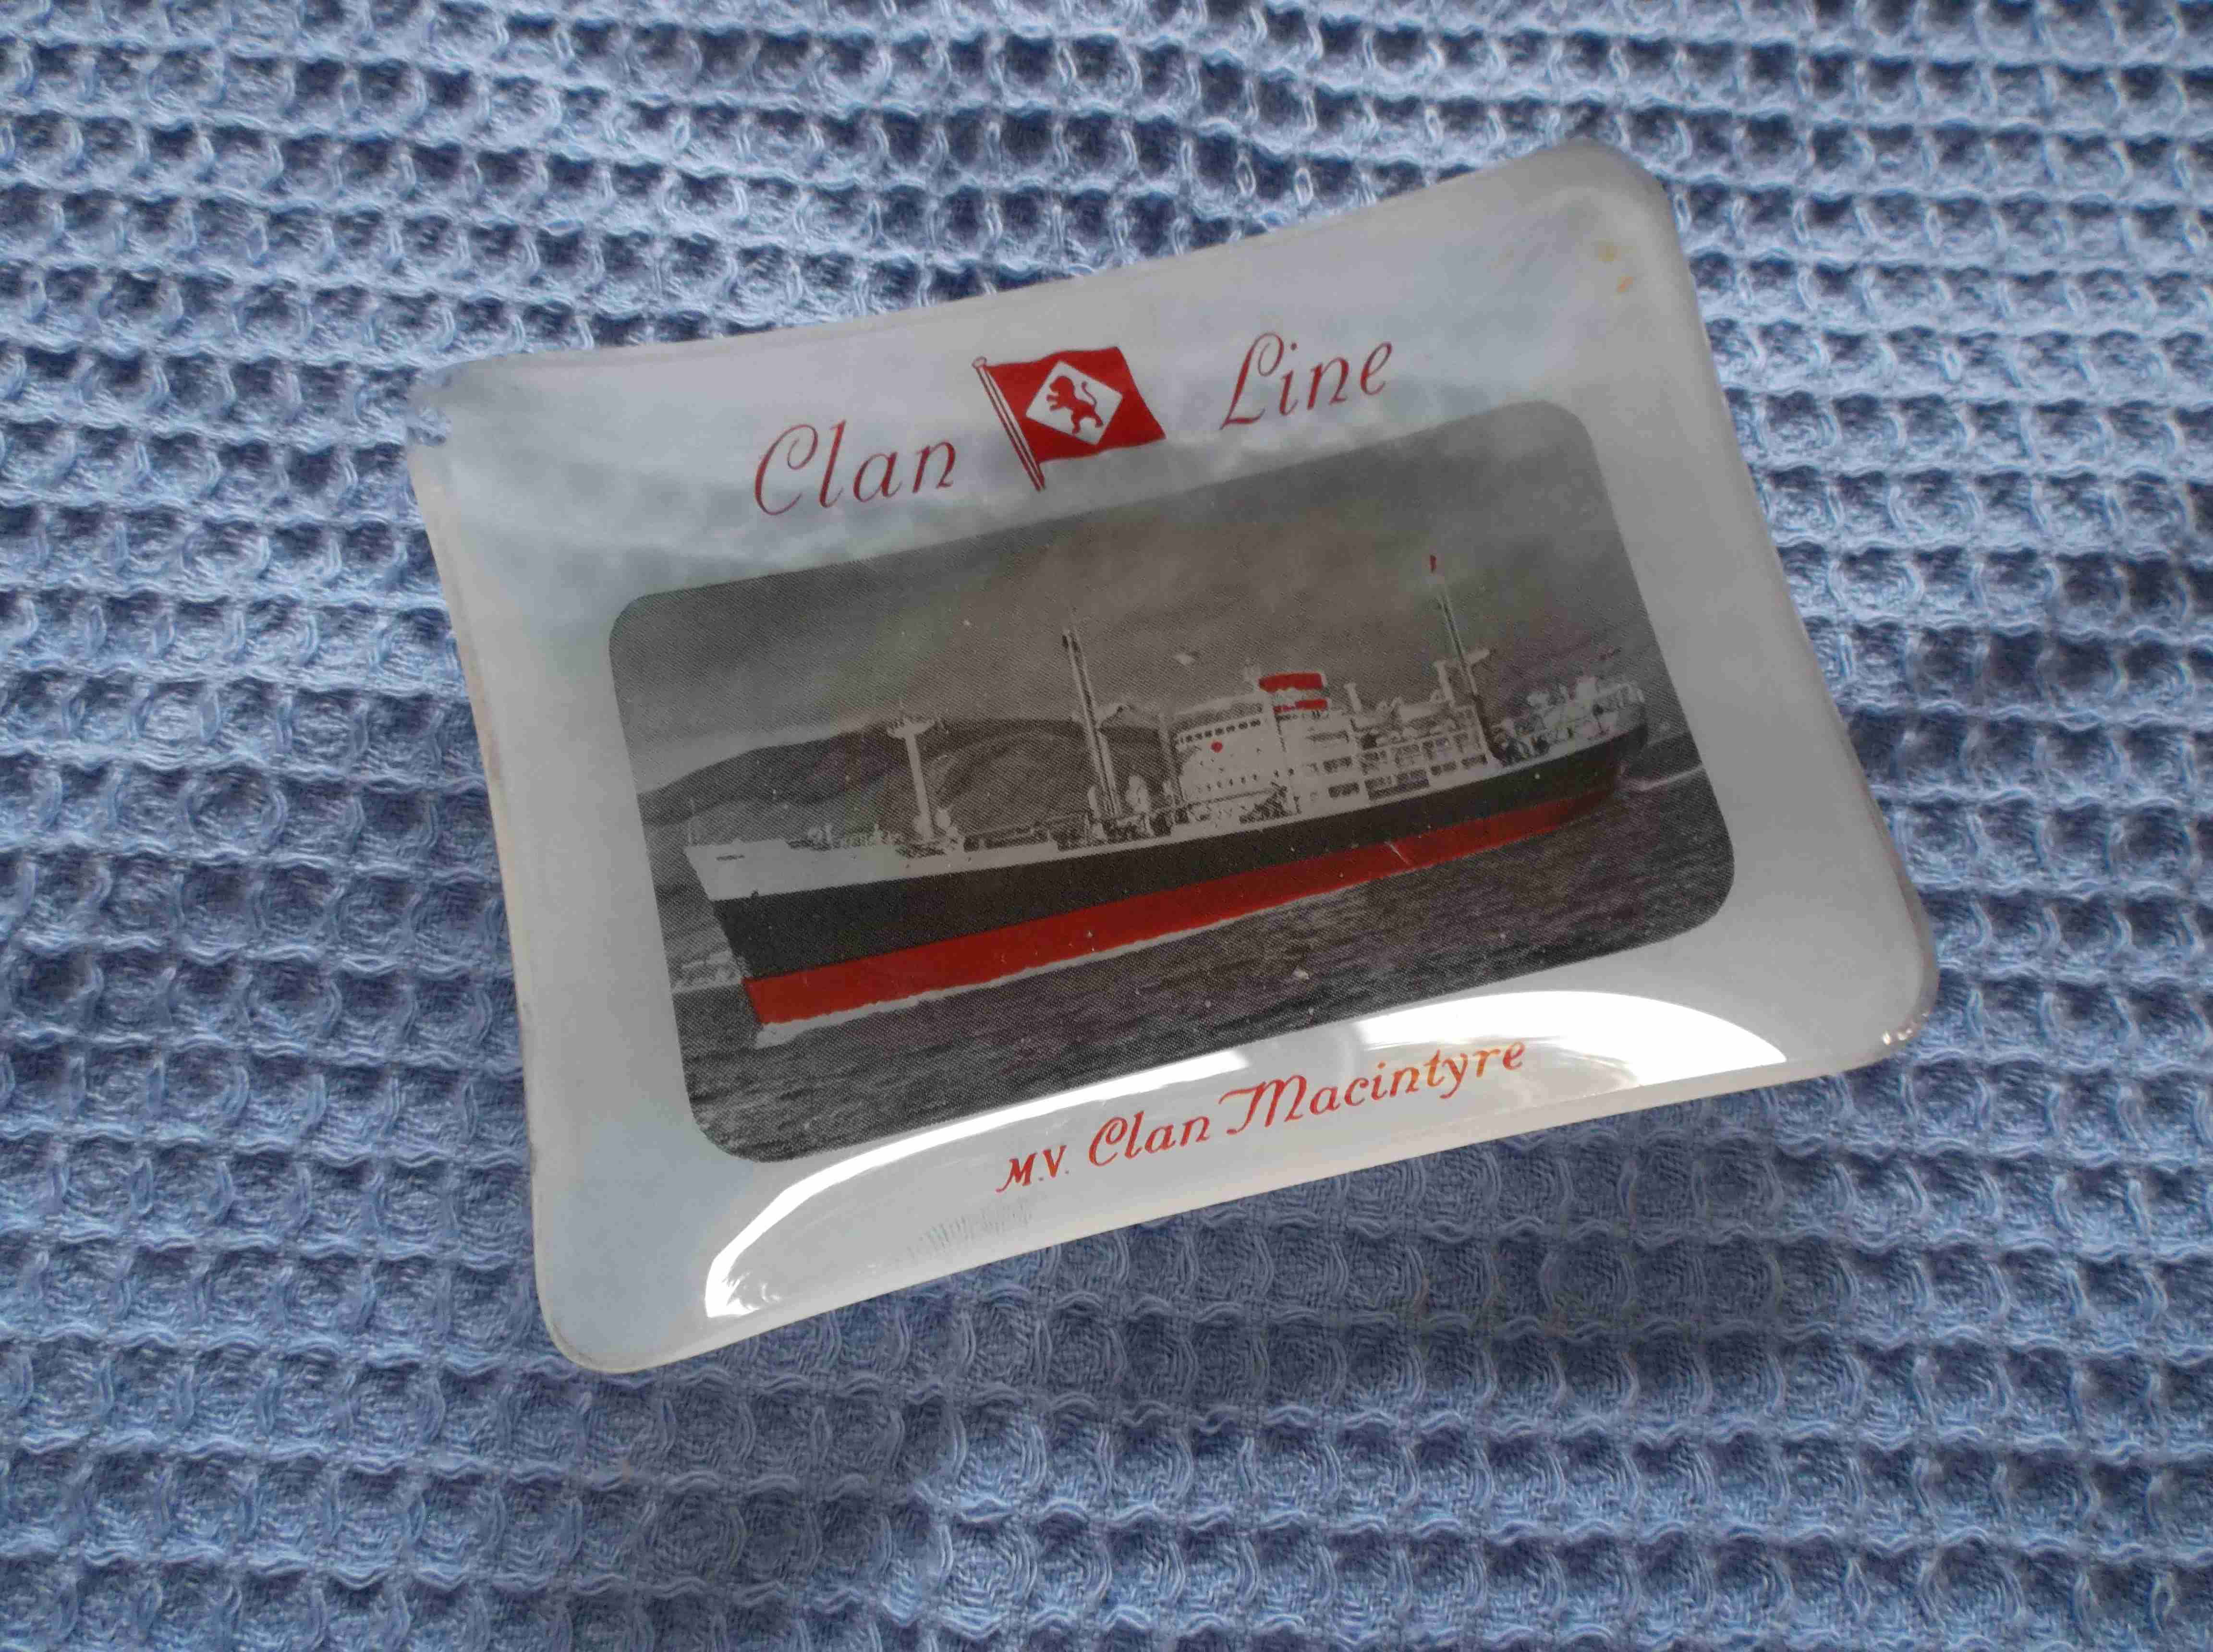 RARE SOUVENIR GLASS DISH FROM THE CLAN LINE VESSEL THE CLAN MACINTYRE DATED 1960's